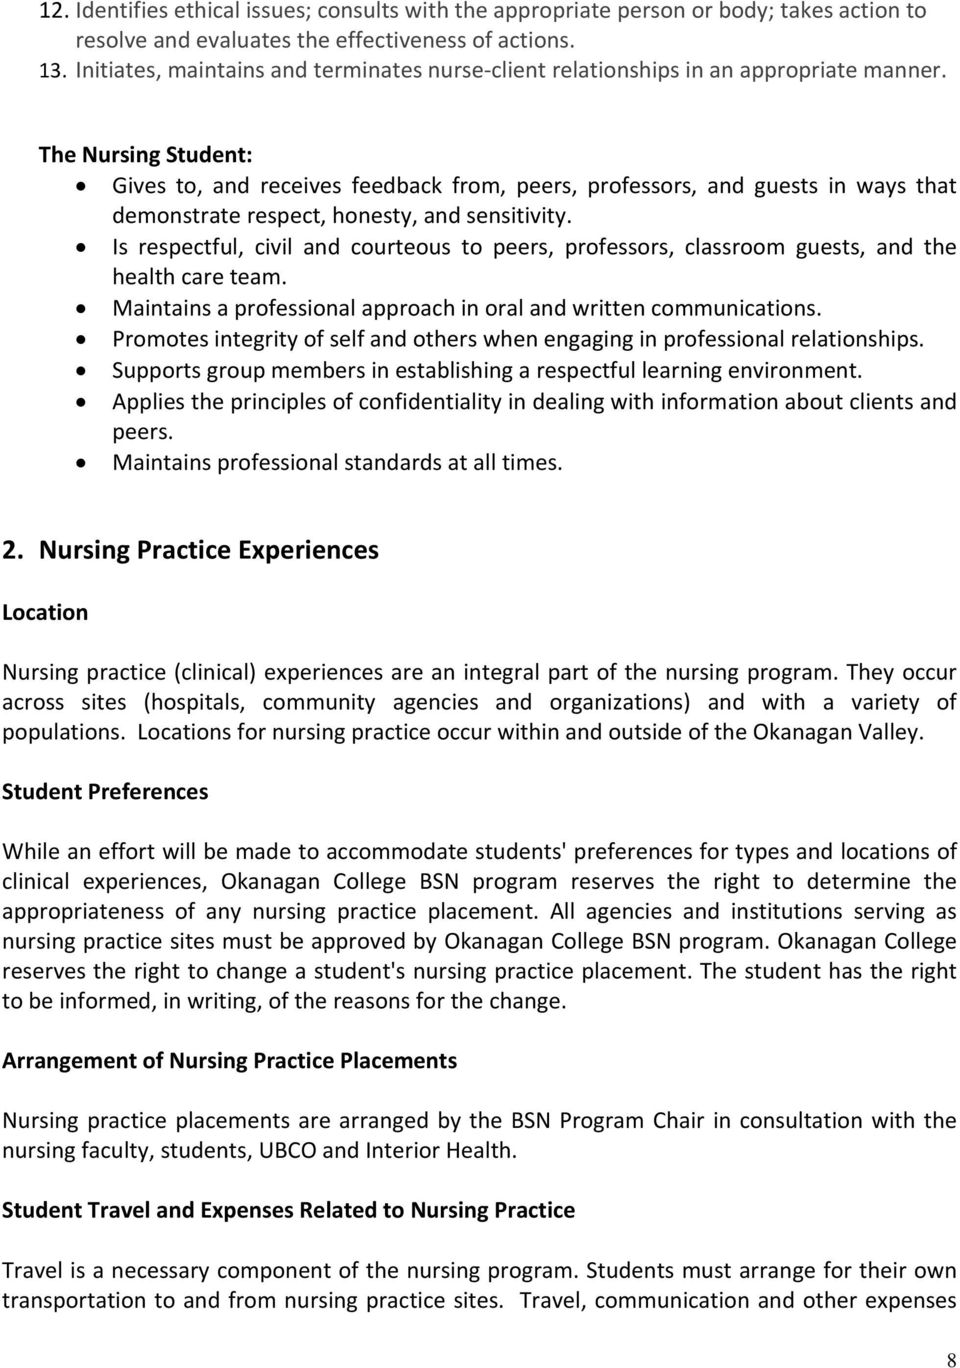 The Nursing Student: Gives to, and receives feedback from, peers, professors, and guests in ways that demonstrate respect, honesty, and sensitivity.